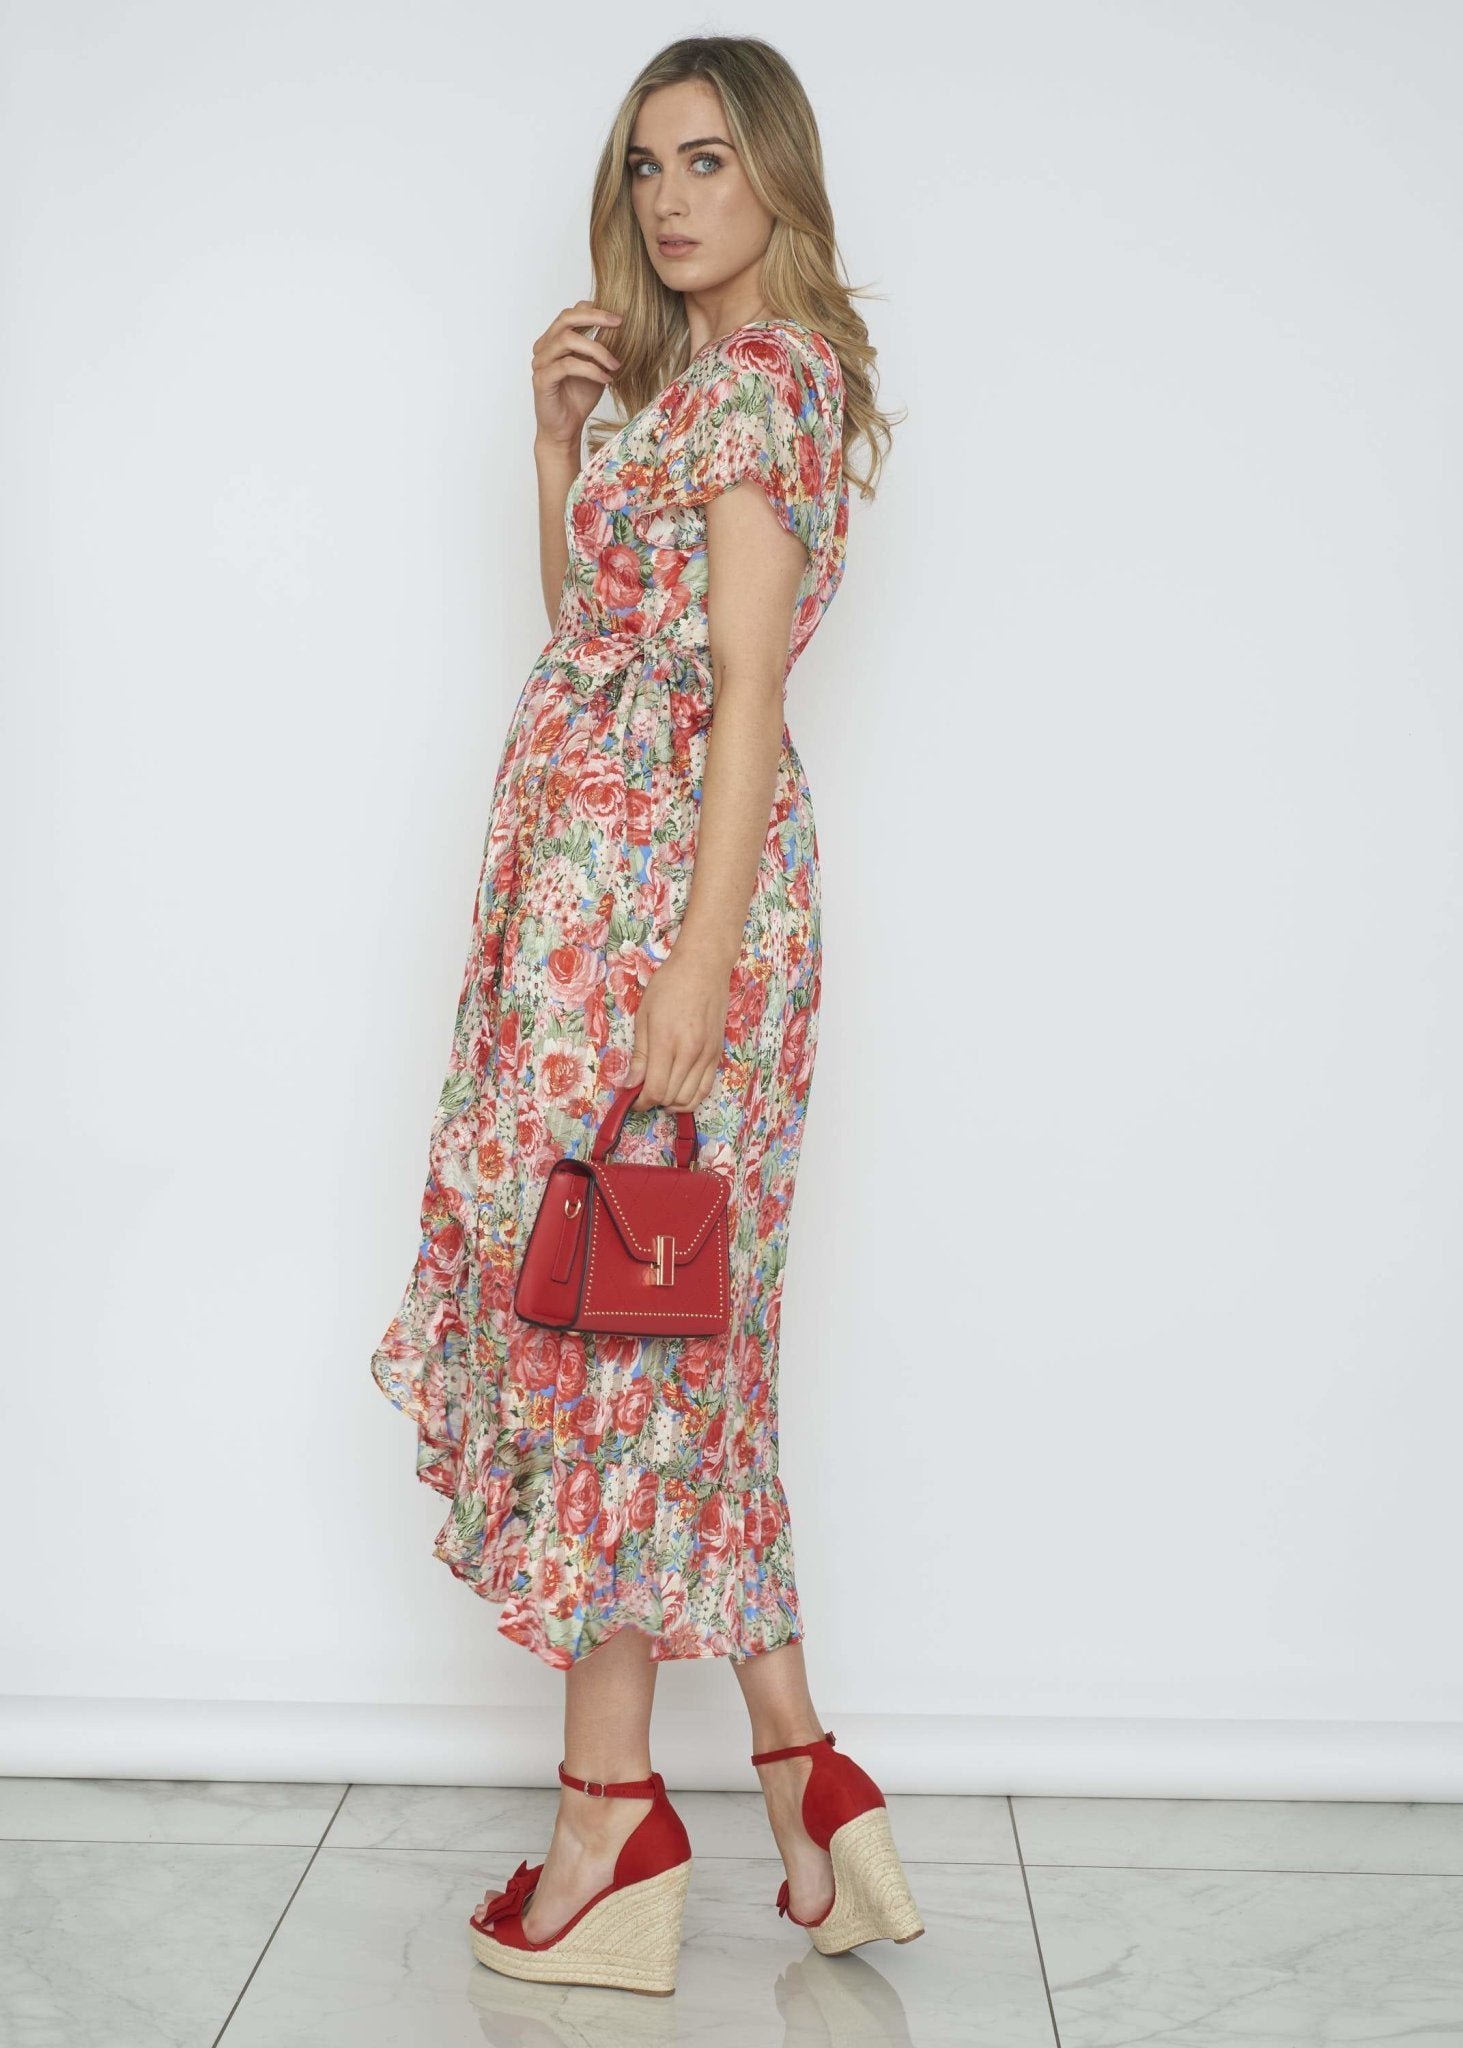 Ally Wrap Dress In Red Floral - The Walk in Wardrobe